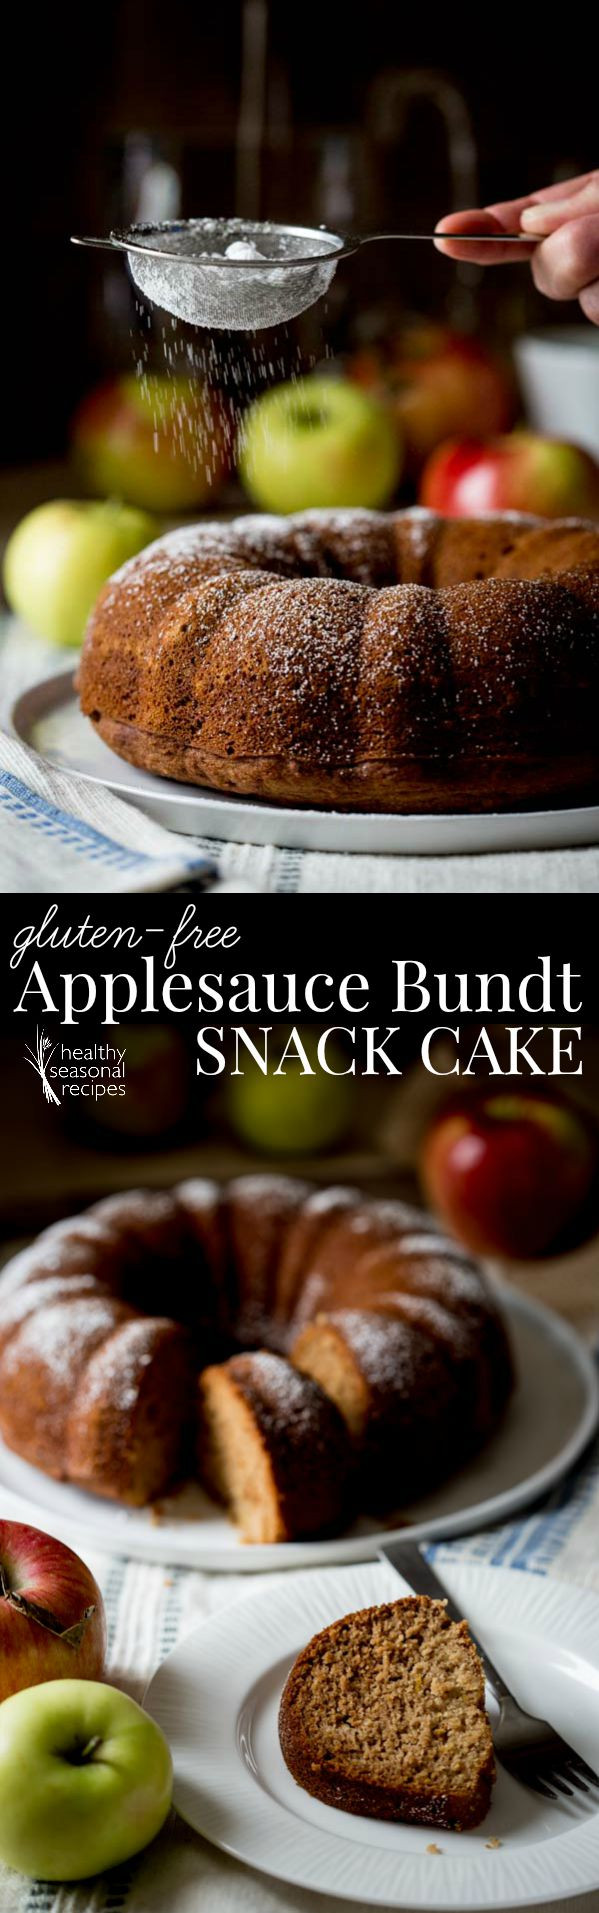 Gluten Free Snack Recipes  gluten free applesauce bundt snack cake Healthy Seasonal